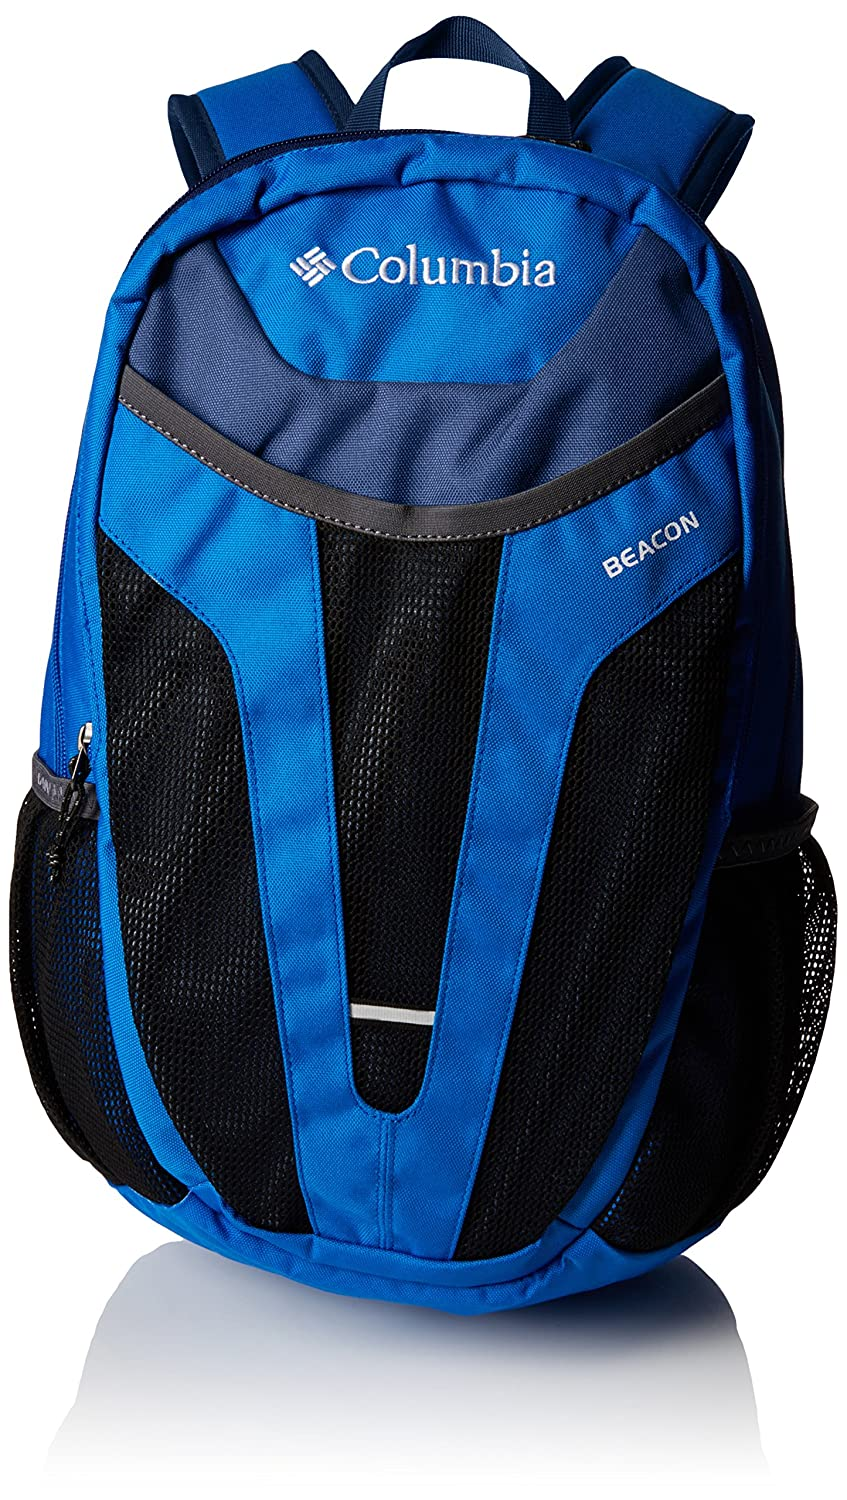 Columbia Beacon - Mochila Mixta, Color Super Blue, Zinc, tamaño Talla única: Amazon.es: Deportes y aire libre